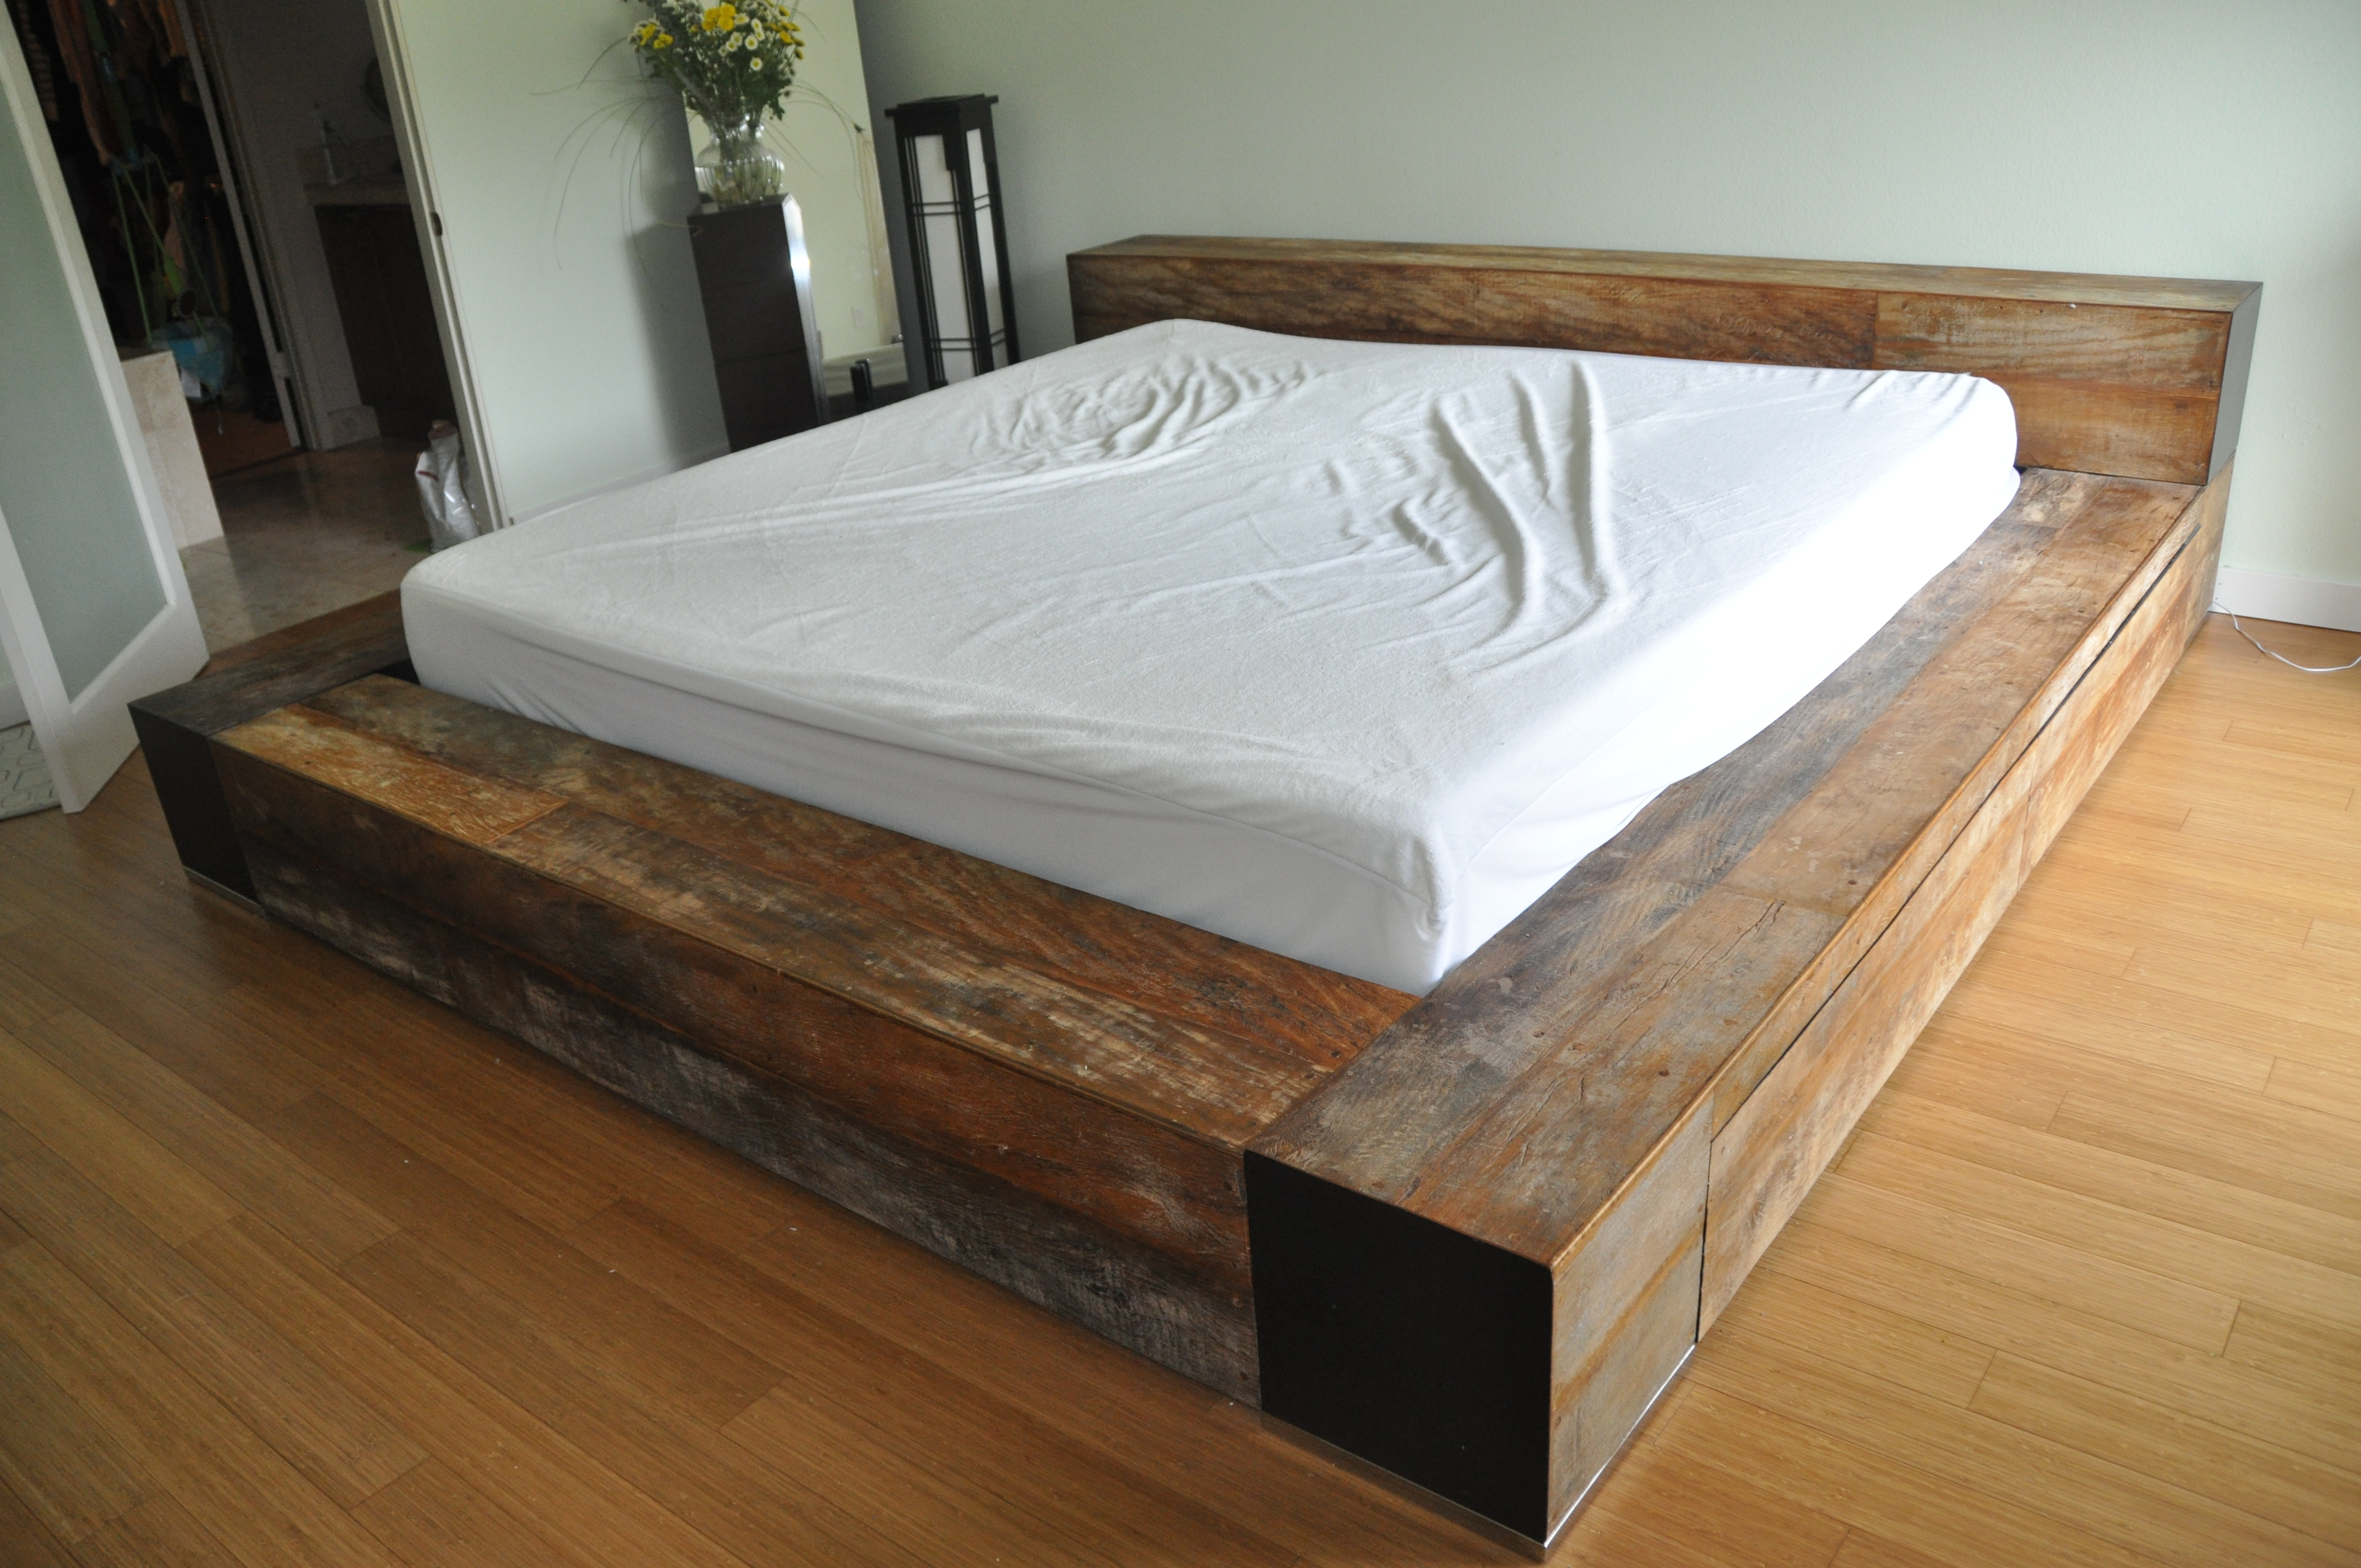 Advantages Of Having A Wooden Bed Frame